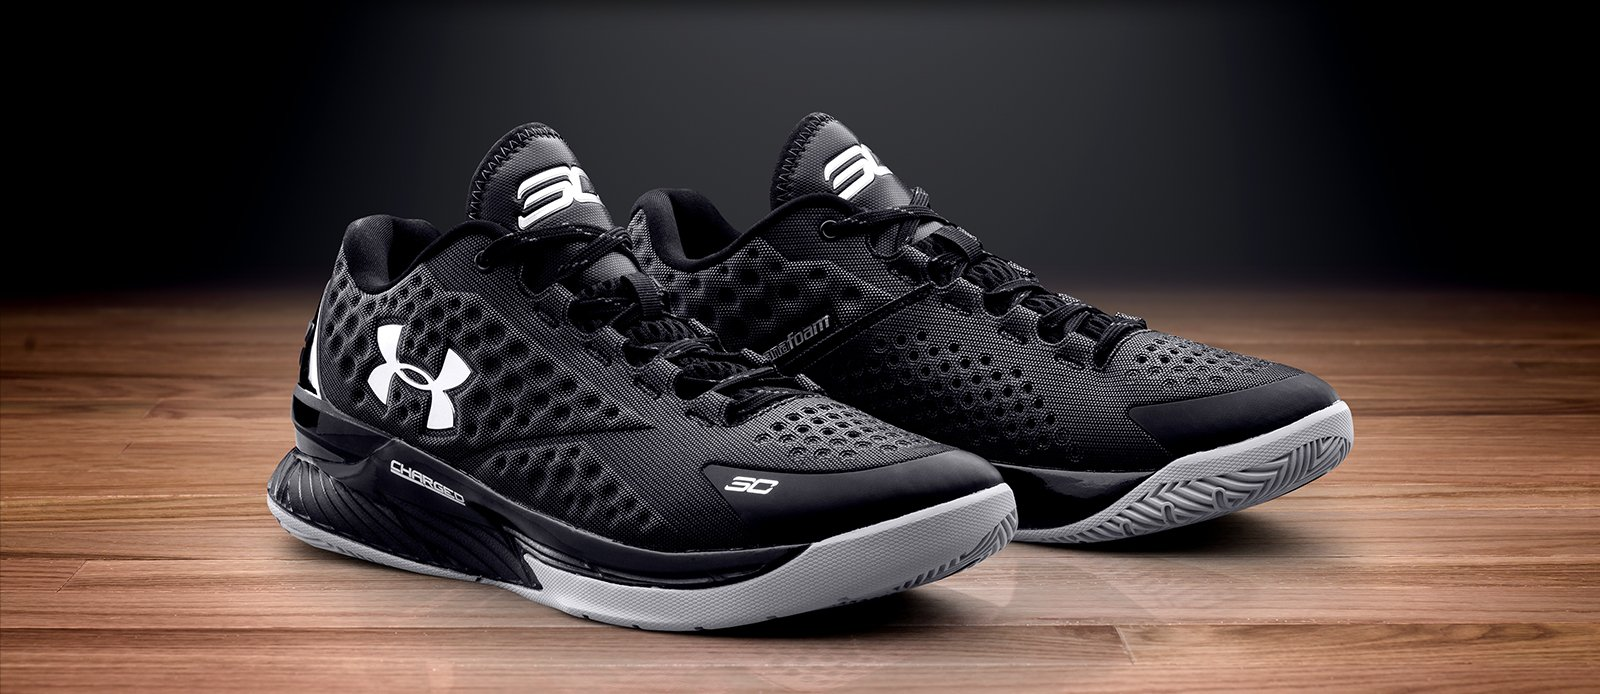 Under Armour Curry One Low 'Two-A-Days' black